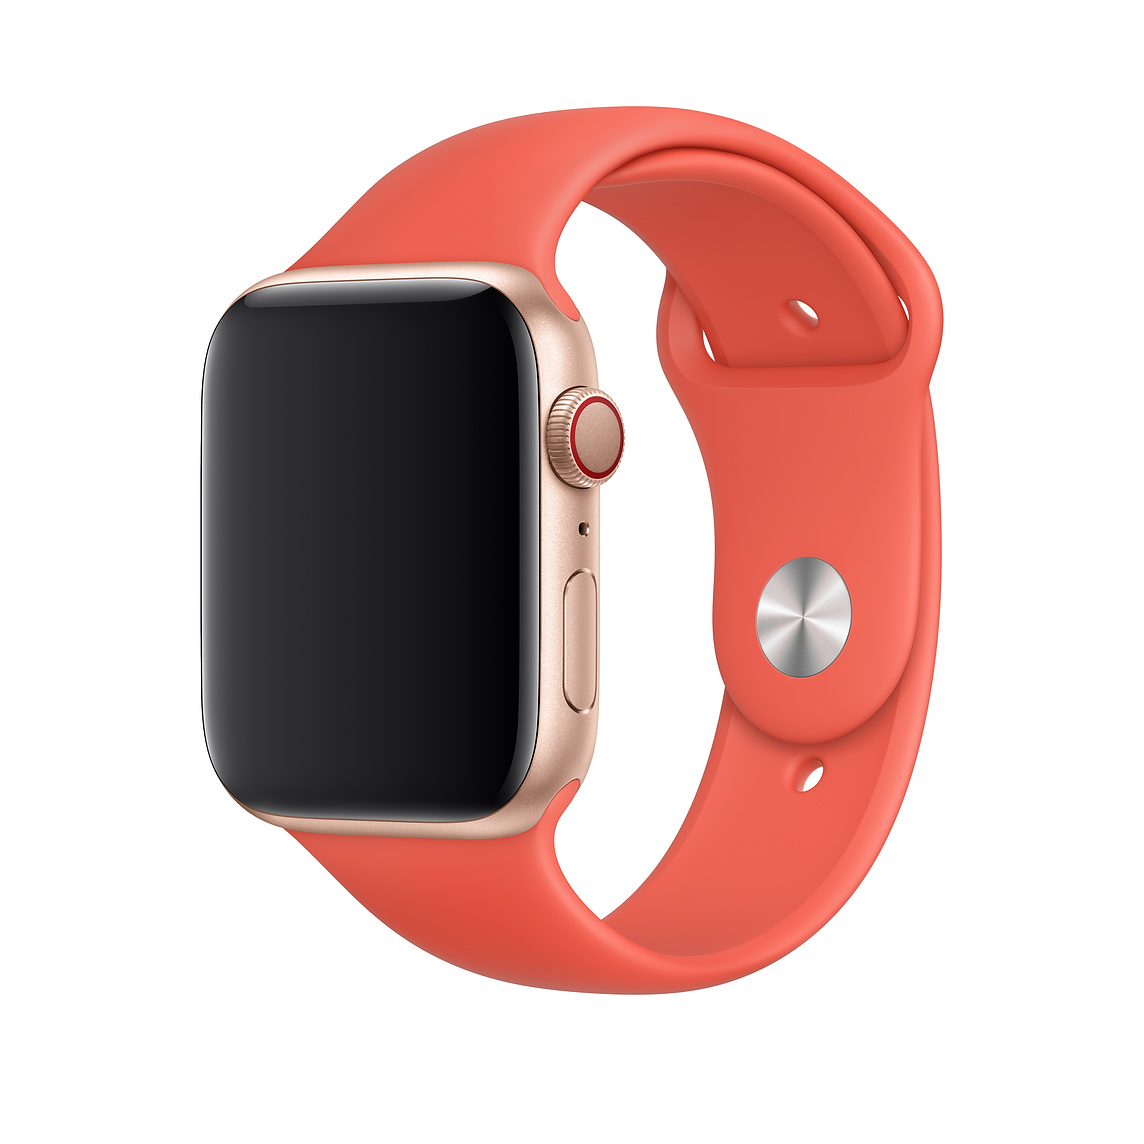 Lovely Living Coral accessories to celebrate the 2019 Pantone color of the year: Coral Apple watch band